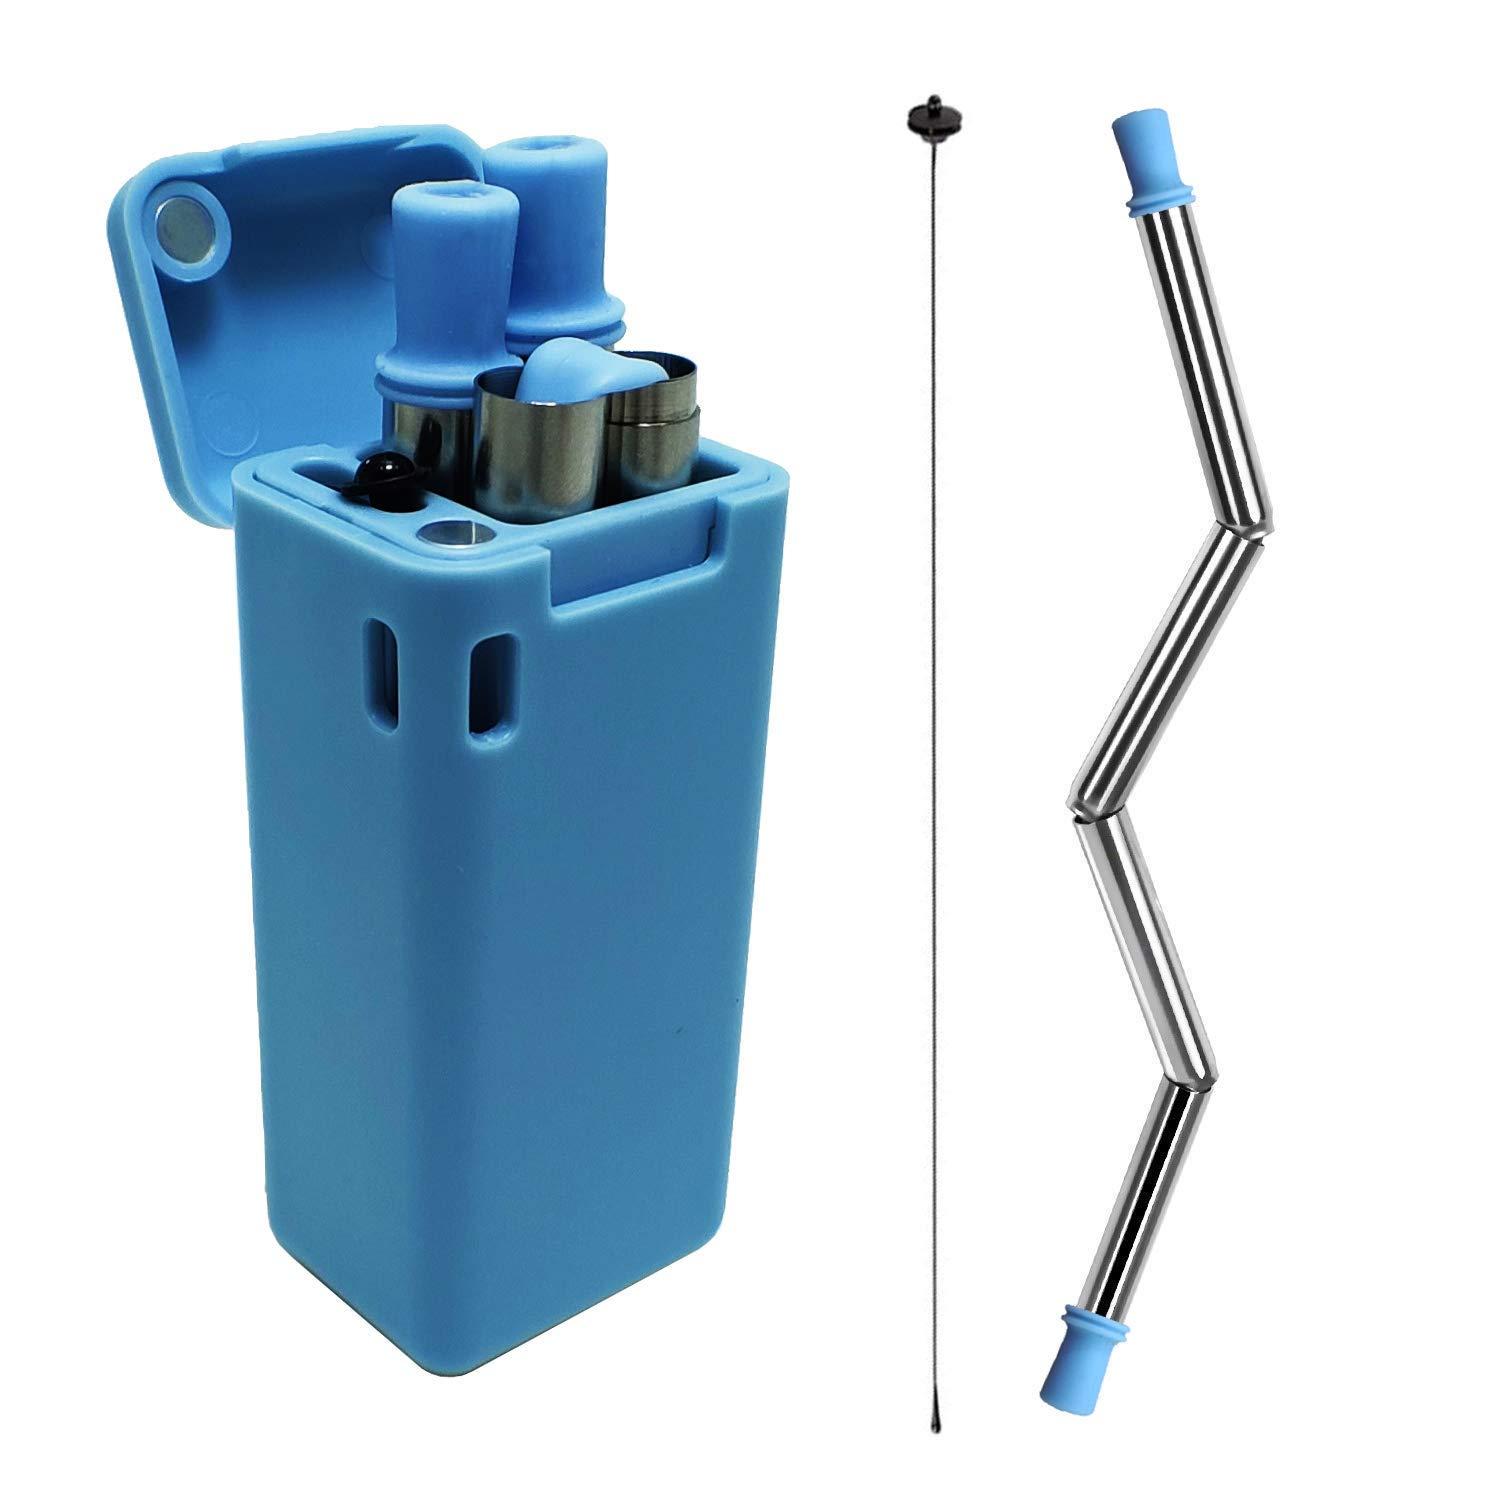 ZUORAN Collapsible Reusable Straws Stainless Steel Folding Straws Portable Travel Food-Grade Straws with Free Gift Keychain Case for Household Outdoor (Blue)